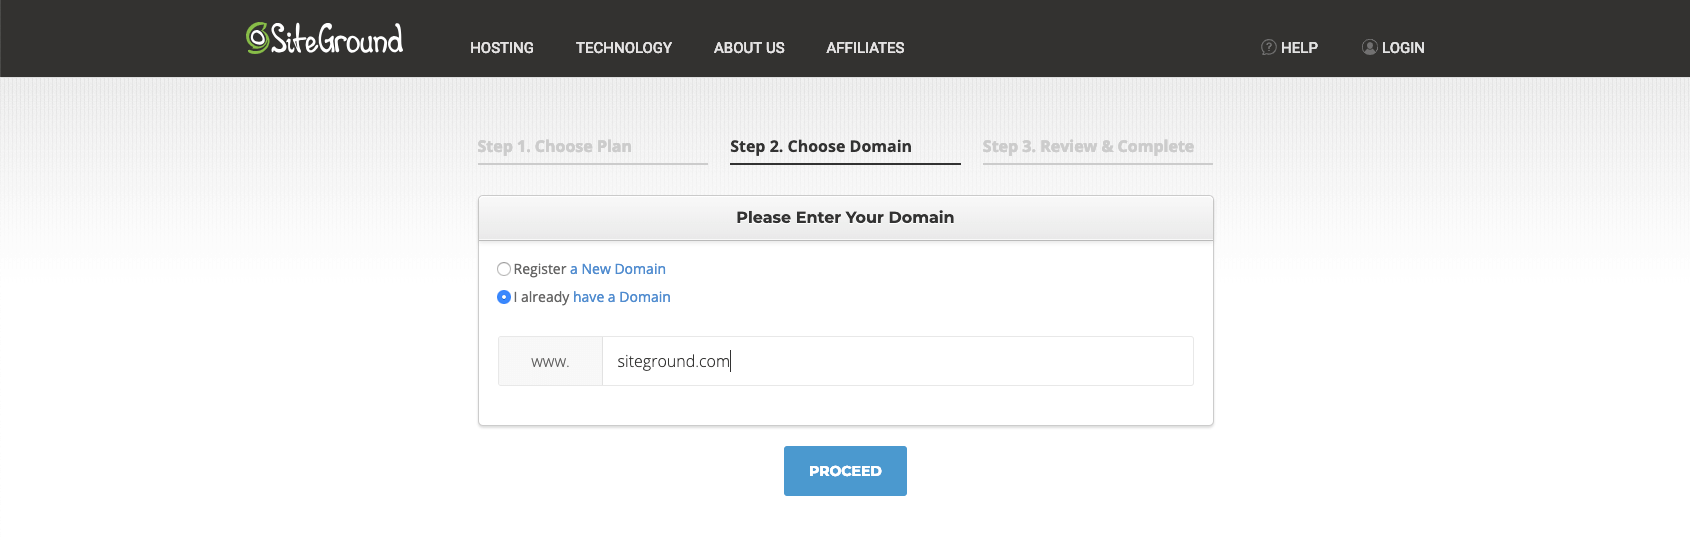 Choose a new domain, or use one you already own, in this step of the sign-up process.